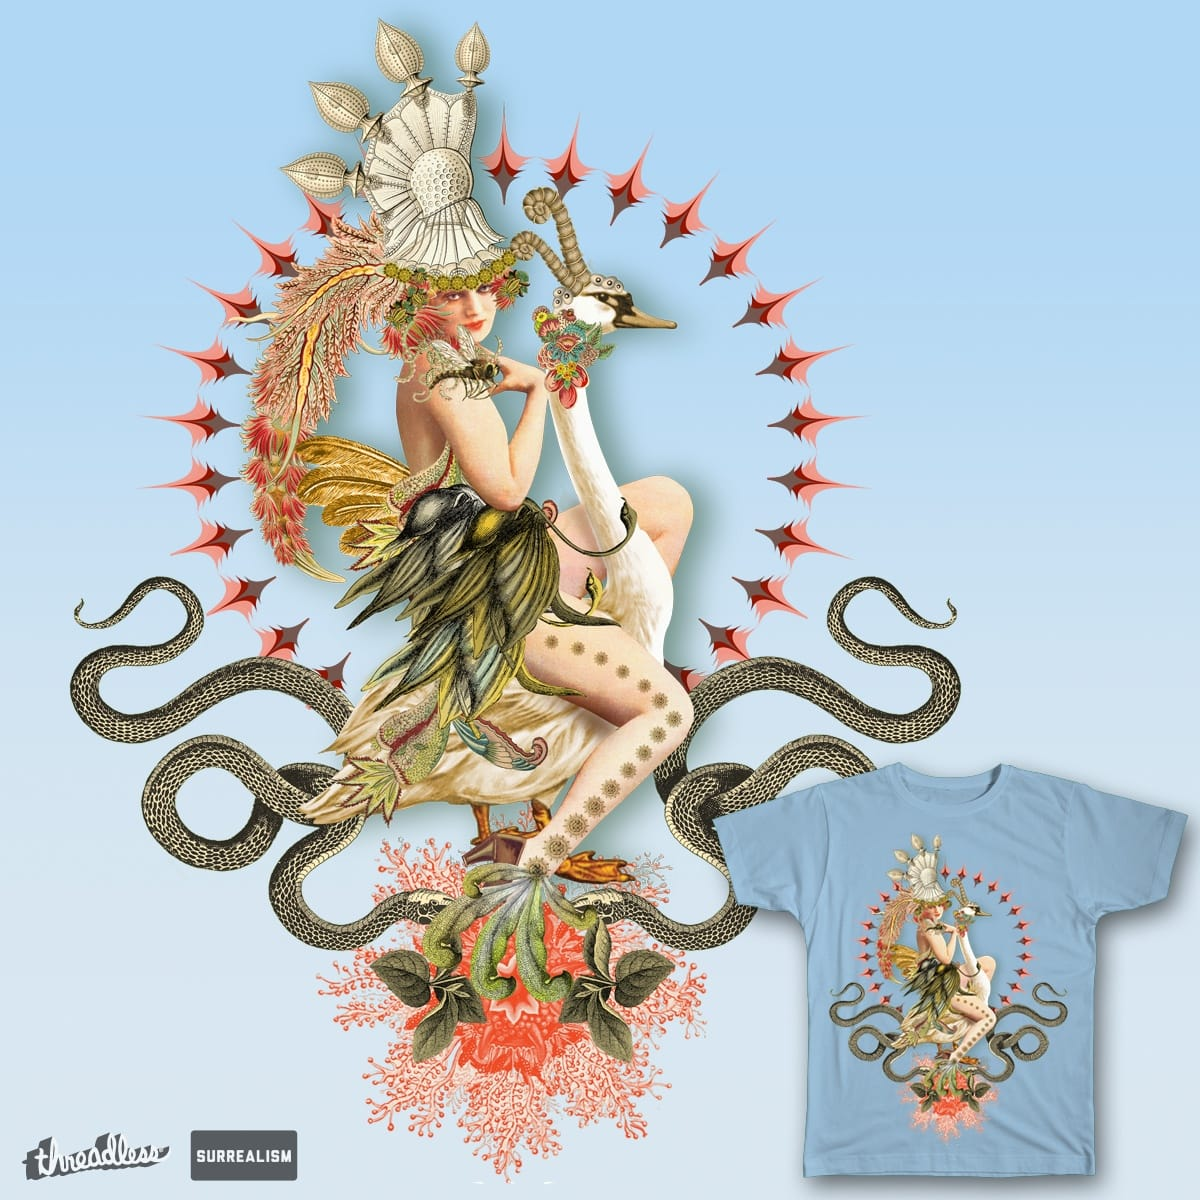 The Queen by Zoveck on Threadless